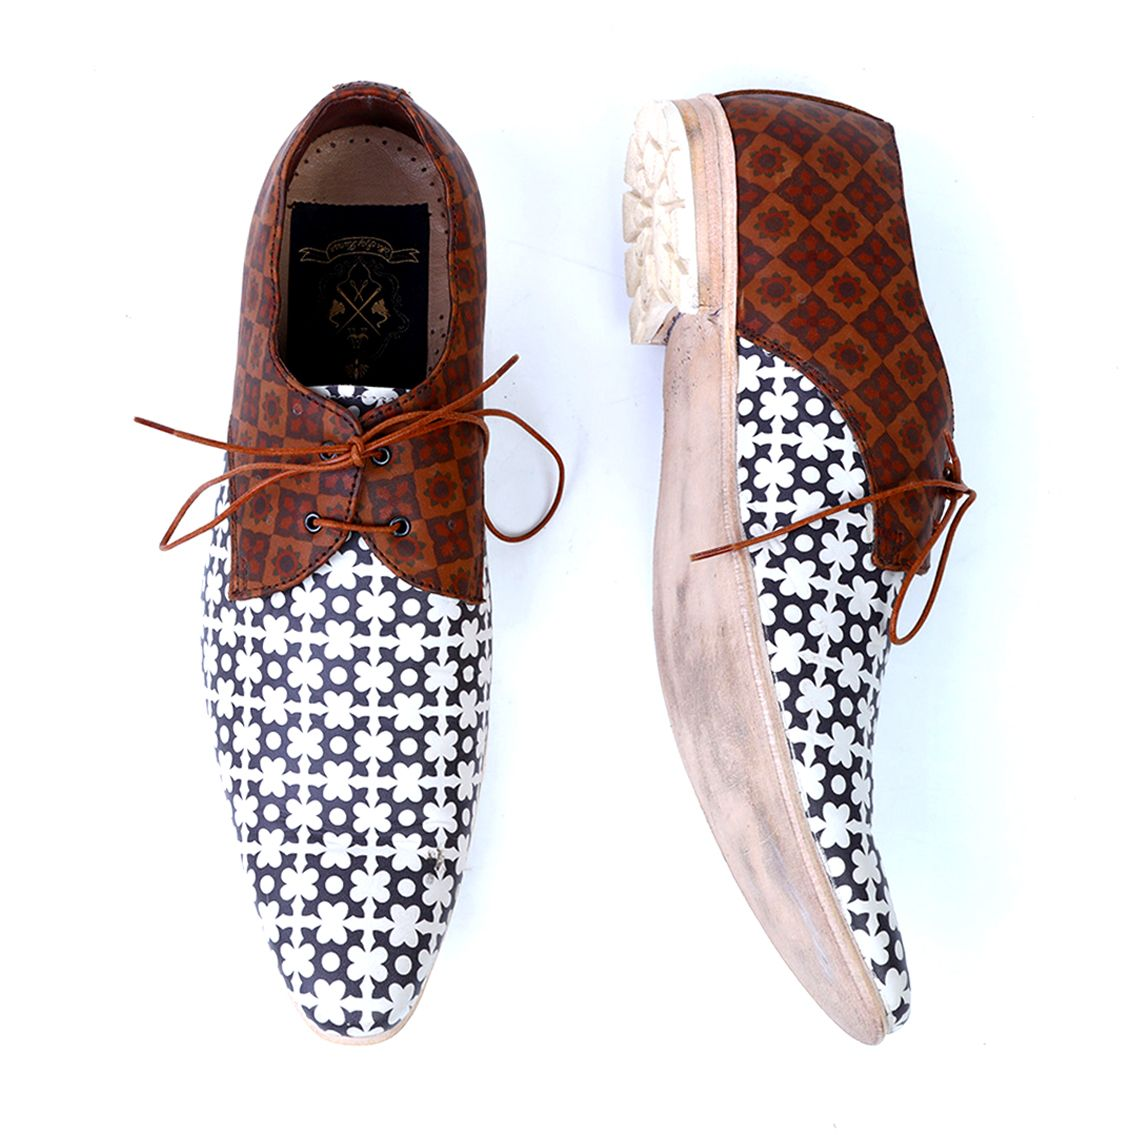 Kazi Handcrafted Leather Printed Shoes